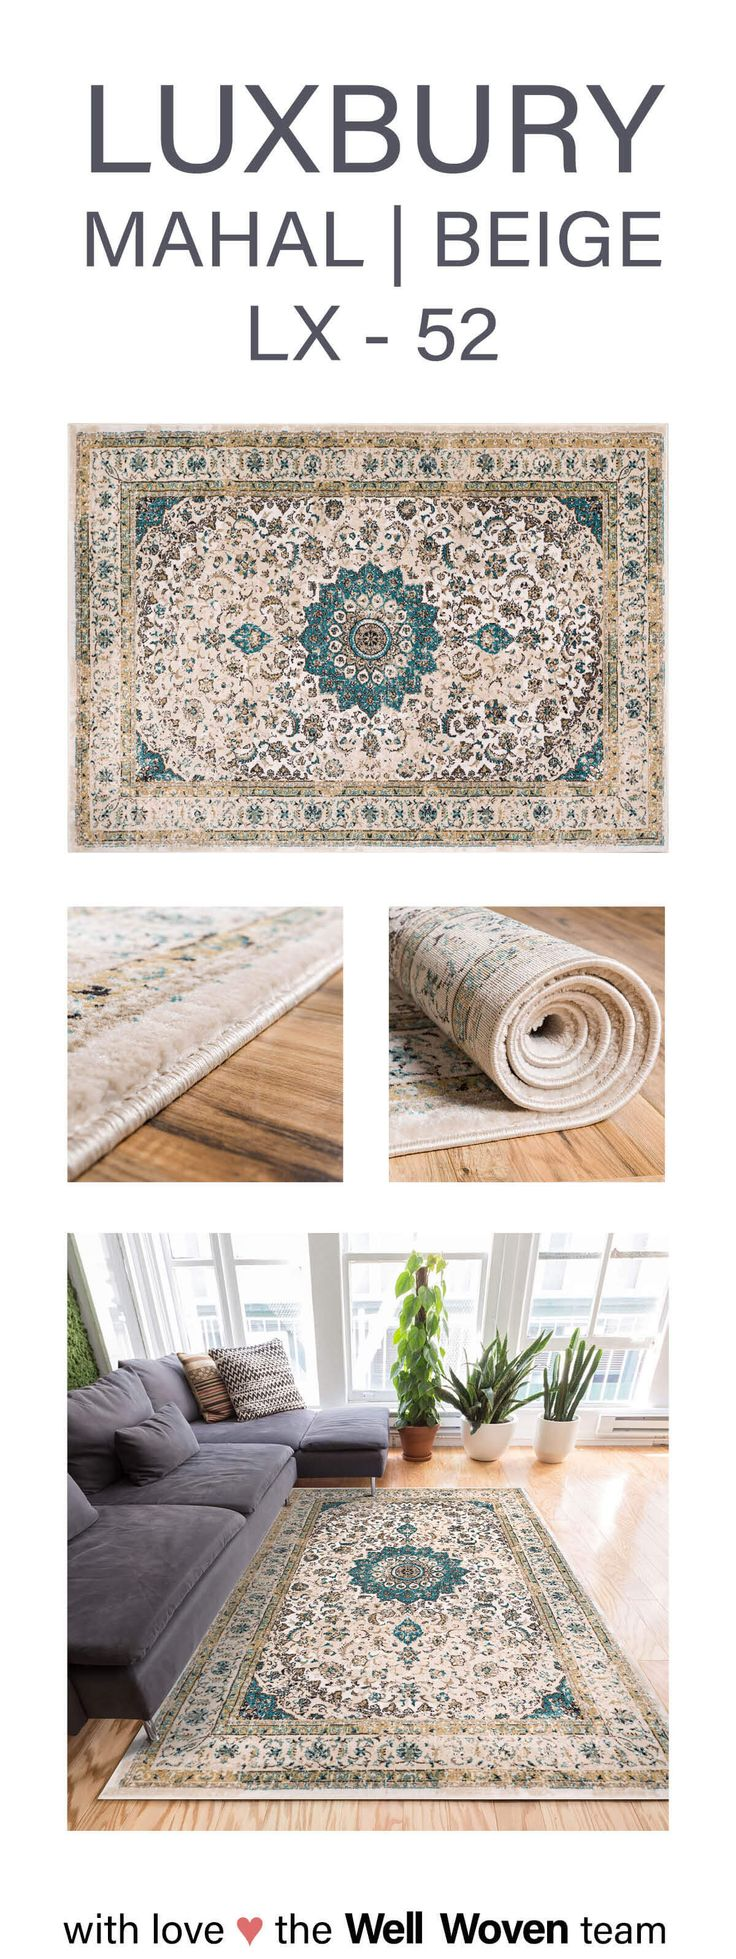 Unique Luxbury is a collection that mixes the timeless classics of Oriental rug design with vintage looks